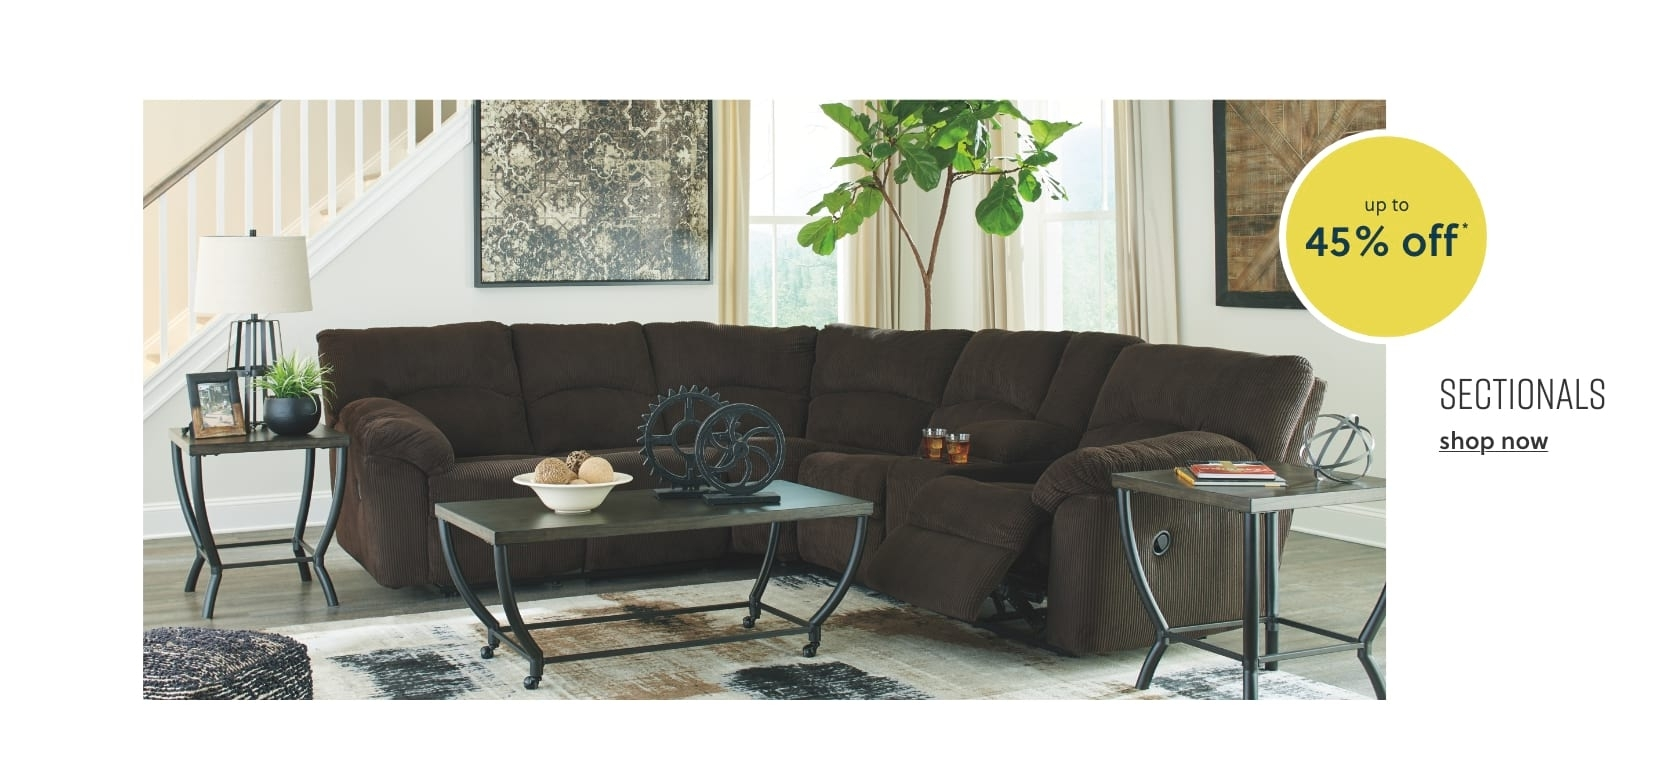 Ashley Furniture Homestore | Home Furniture & Decor inside Murfreesboro Tn Sectional Sofas (Image 3 of 10)